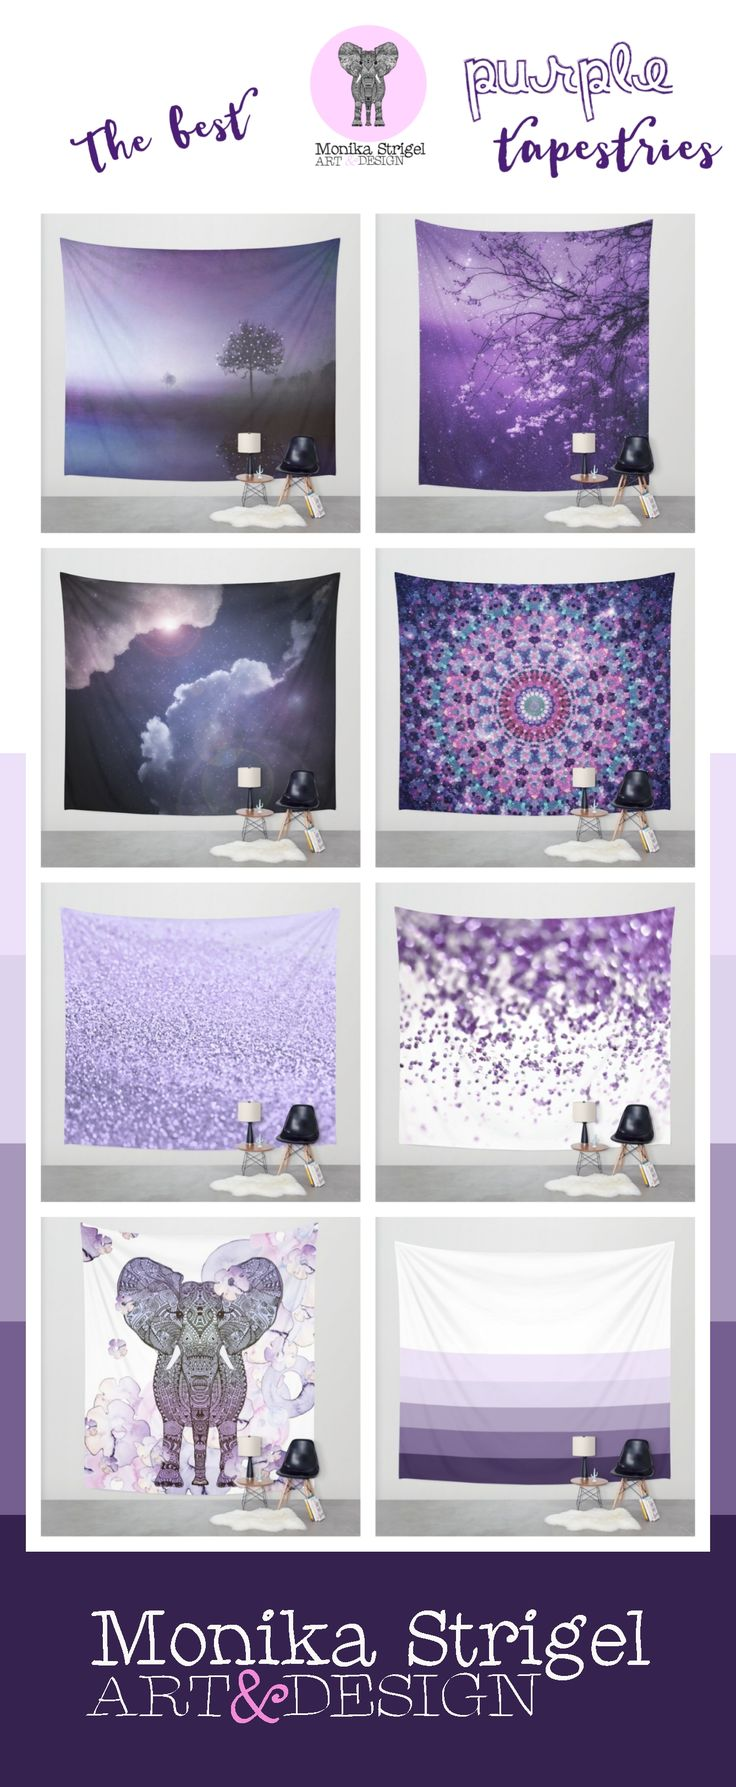 I`m in love with purple & lavender .... find here my designs for tapestries - all in three sizes on Society6 available. Worldwide shipping - no hassle returns! $39  #purple #lavender #tapestrie #glitter #boho #tapestries #landscape #cherry  #blooms #flower #floral #abstract #minimal #walldeco #decoration #homedecor #dekoration #wanddekoration #stoff #vorhang #vorhangstoff #weltweit #wolken #clouds #elephant  #kinderzimmer #mädchenzimmer #teenroom #girlsroom #college #photo #monikastrigel